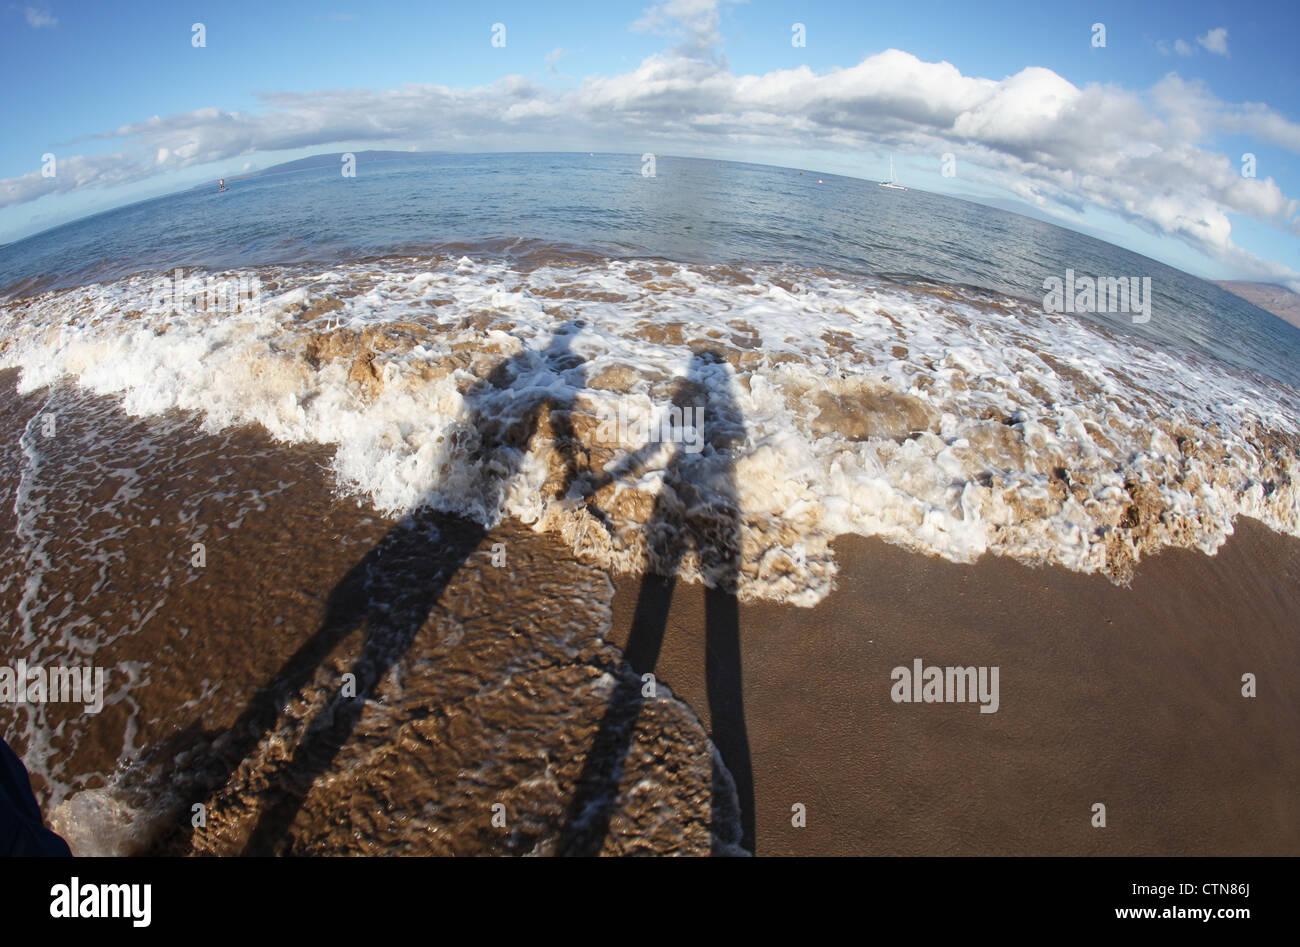 Newlywed couple holding hands with shadows falling across breaking waves on beach. - Stock Image